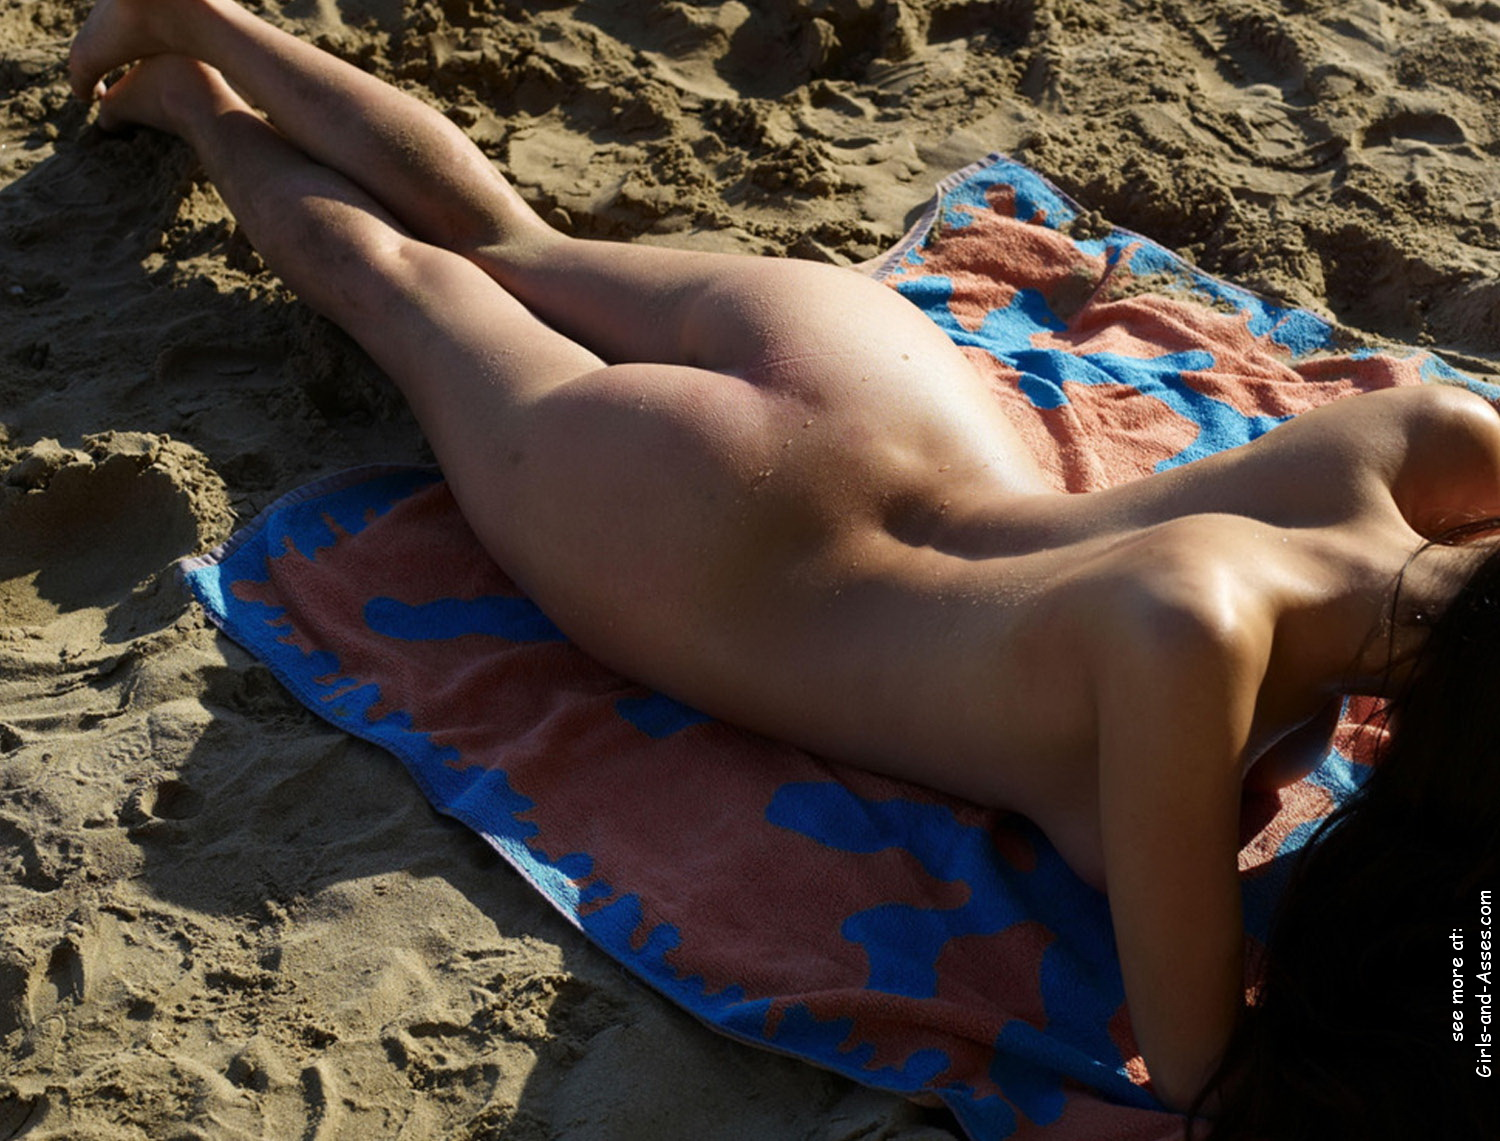 naked sunbathing tanning on the beach pic 02145